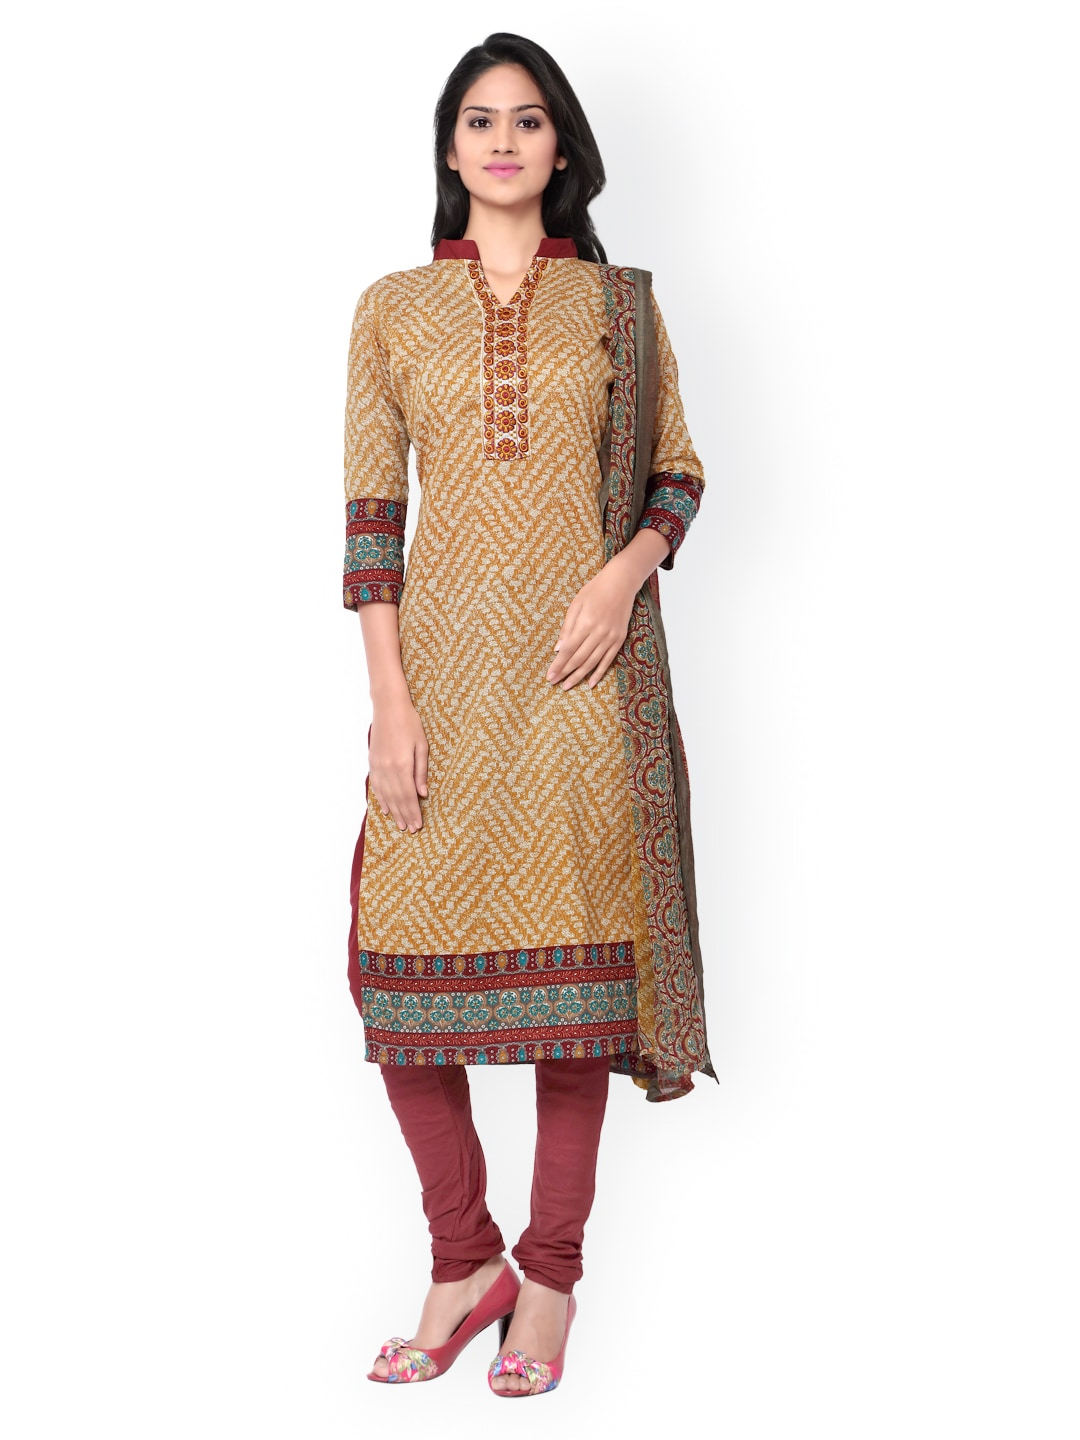 Inddus Mustard Yellow & Maroon Printed Cotton Unstitched Dress Material image